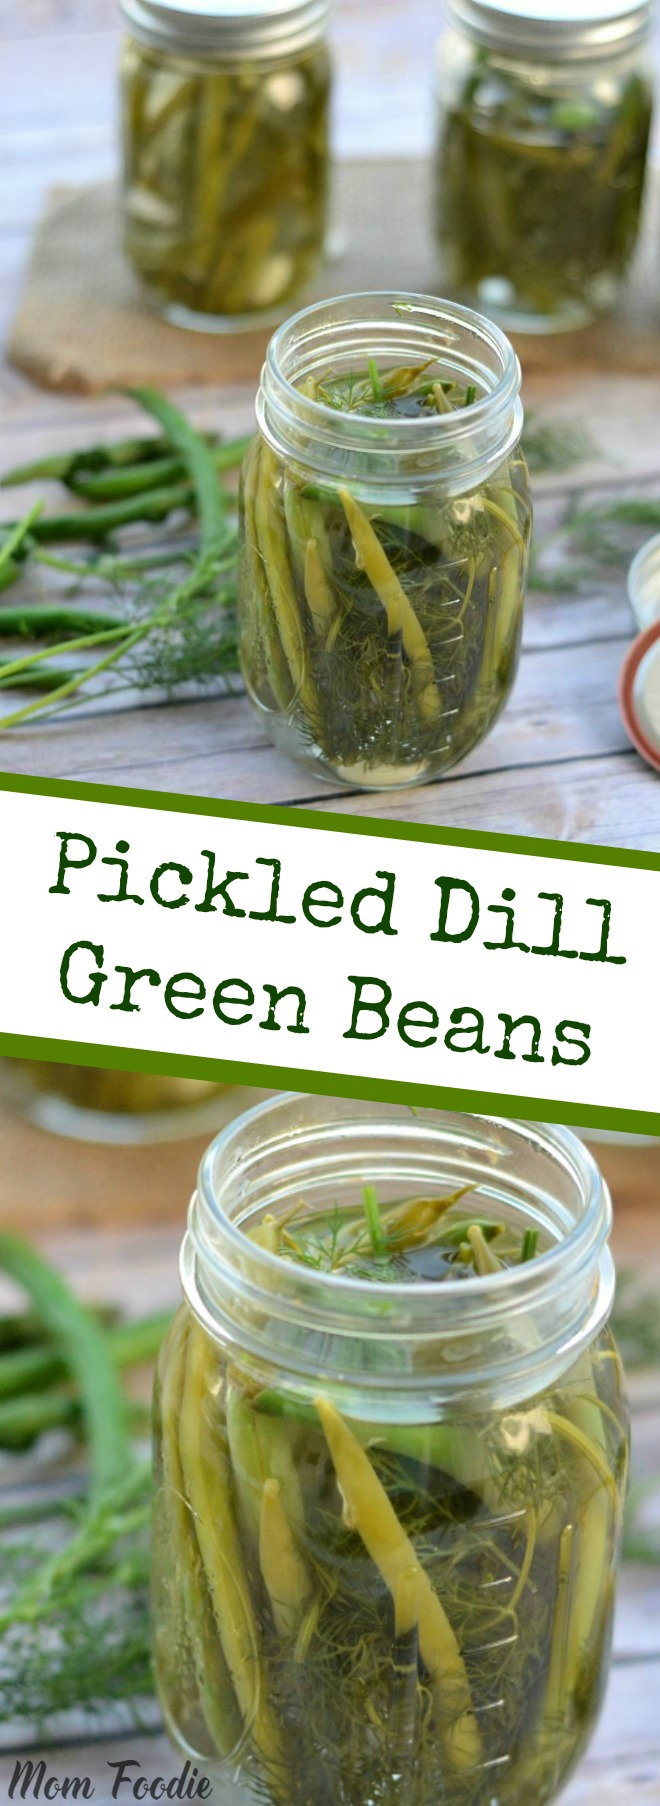 Pickled Green Beans with Dill